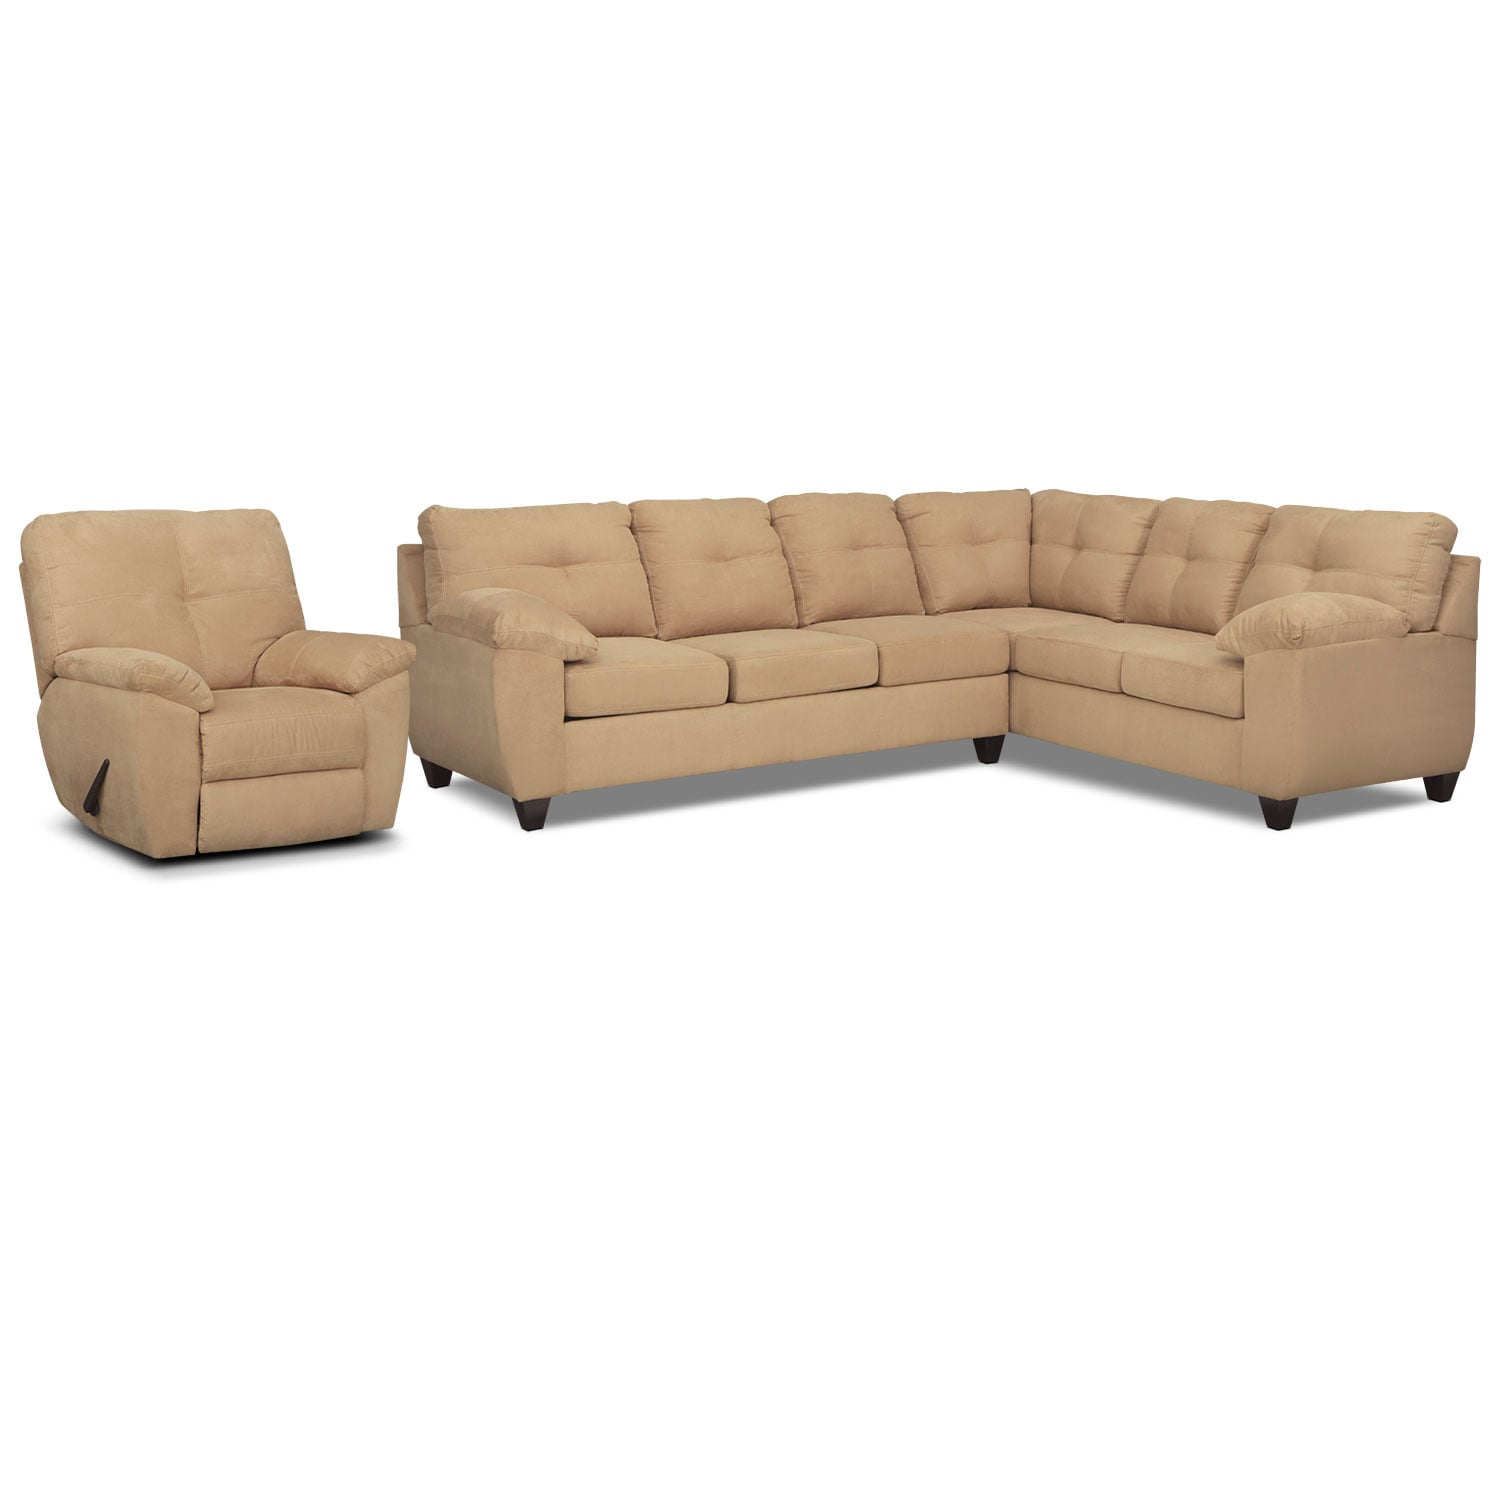 Living Room Furniture - Rialto 2-Piece Sectional with Right-Facing Corner Sofa and Glider Recliner Set - Camel